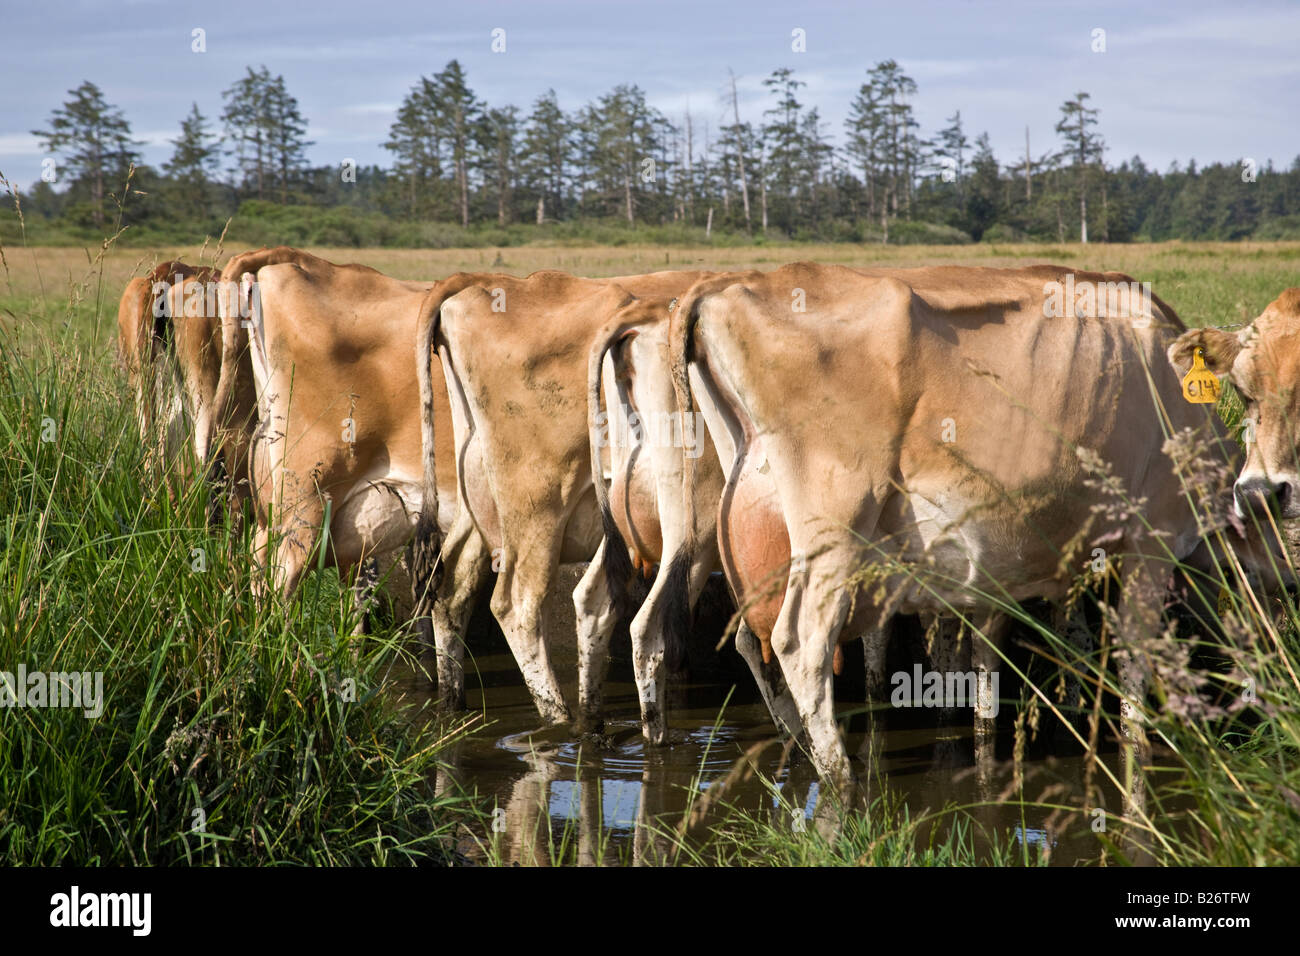 Backsides of Jersey Cows at water trough. - Stock Image